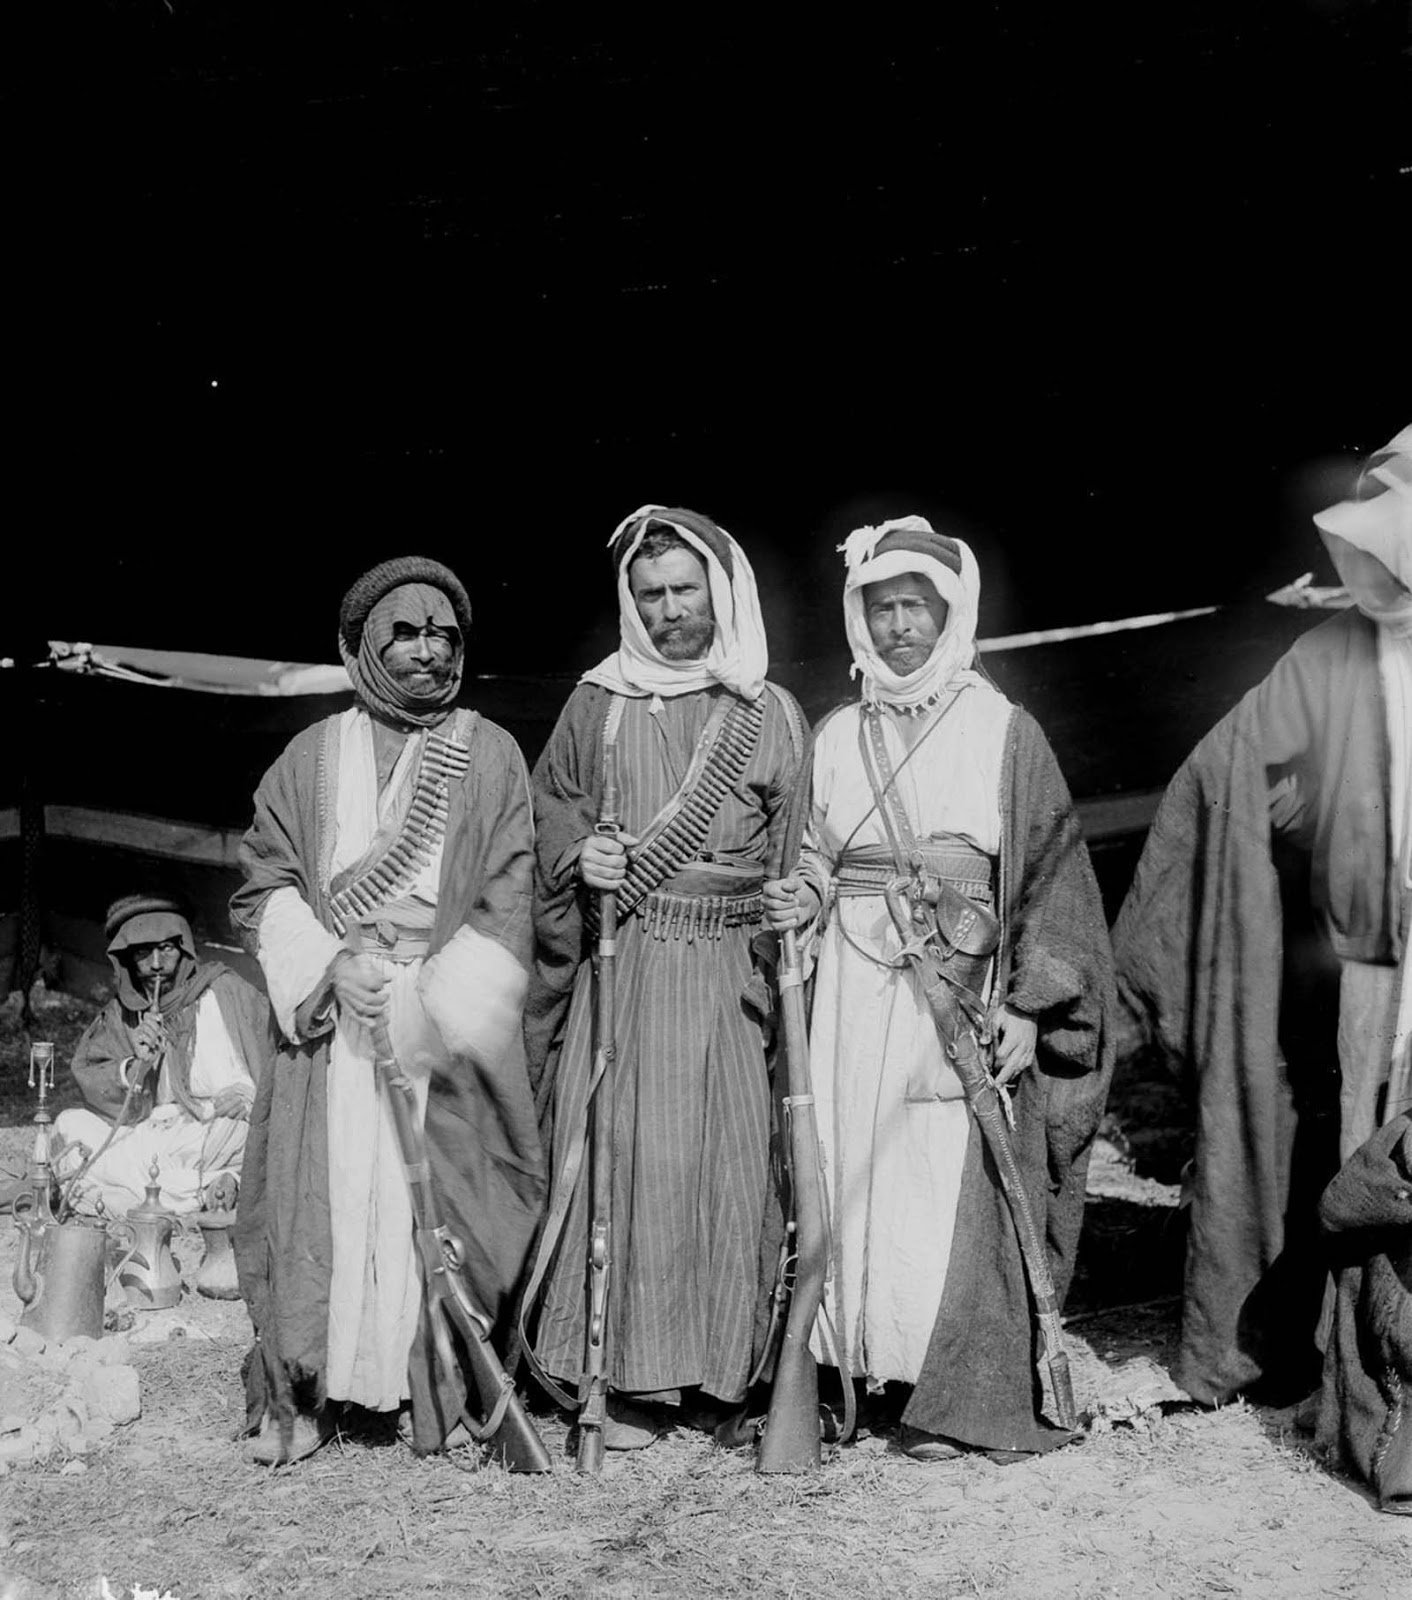 Armed Bedouin men.